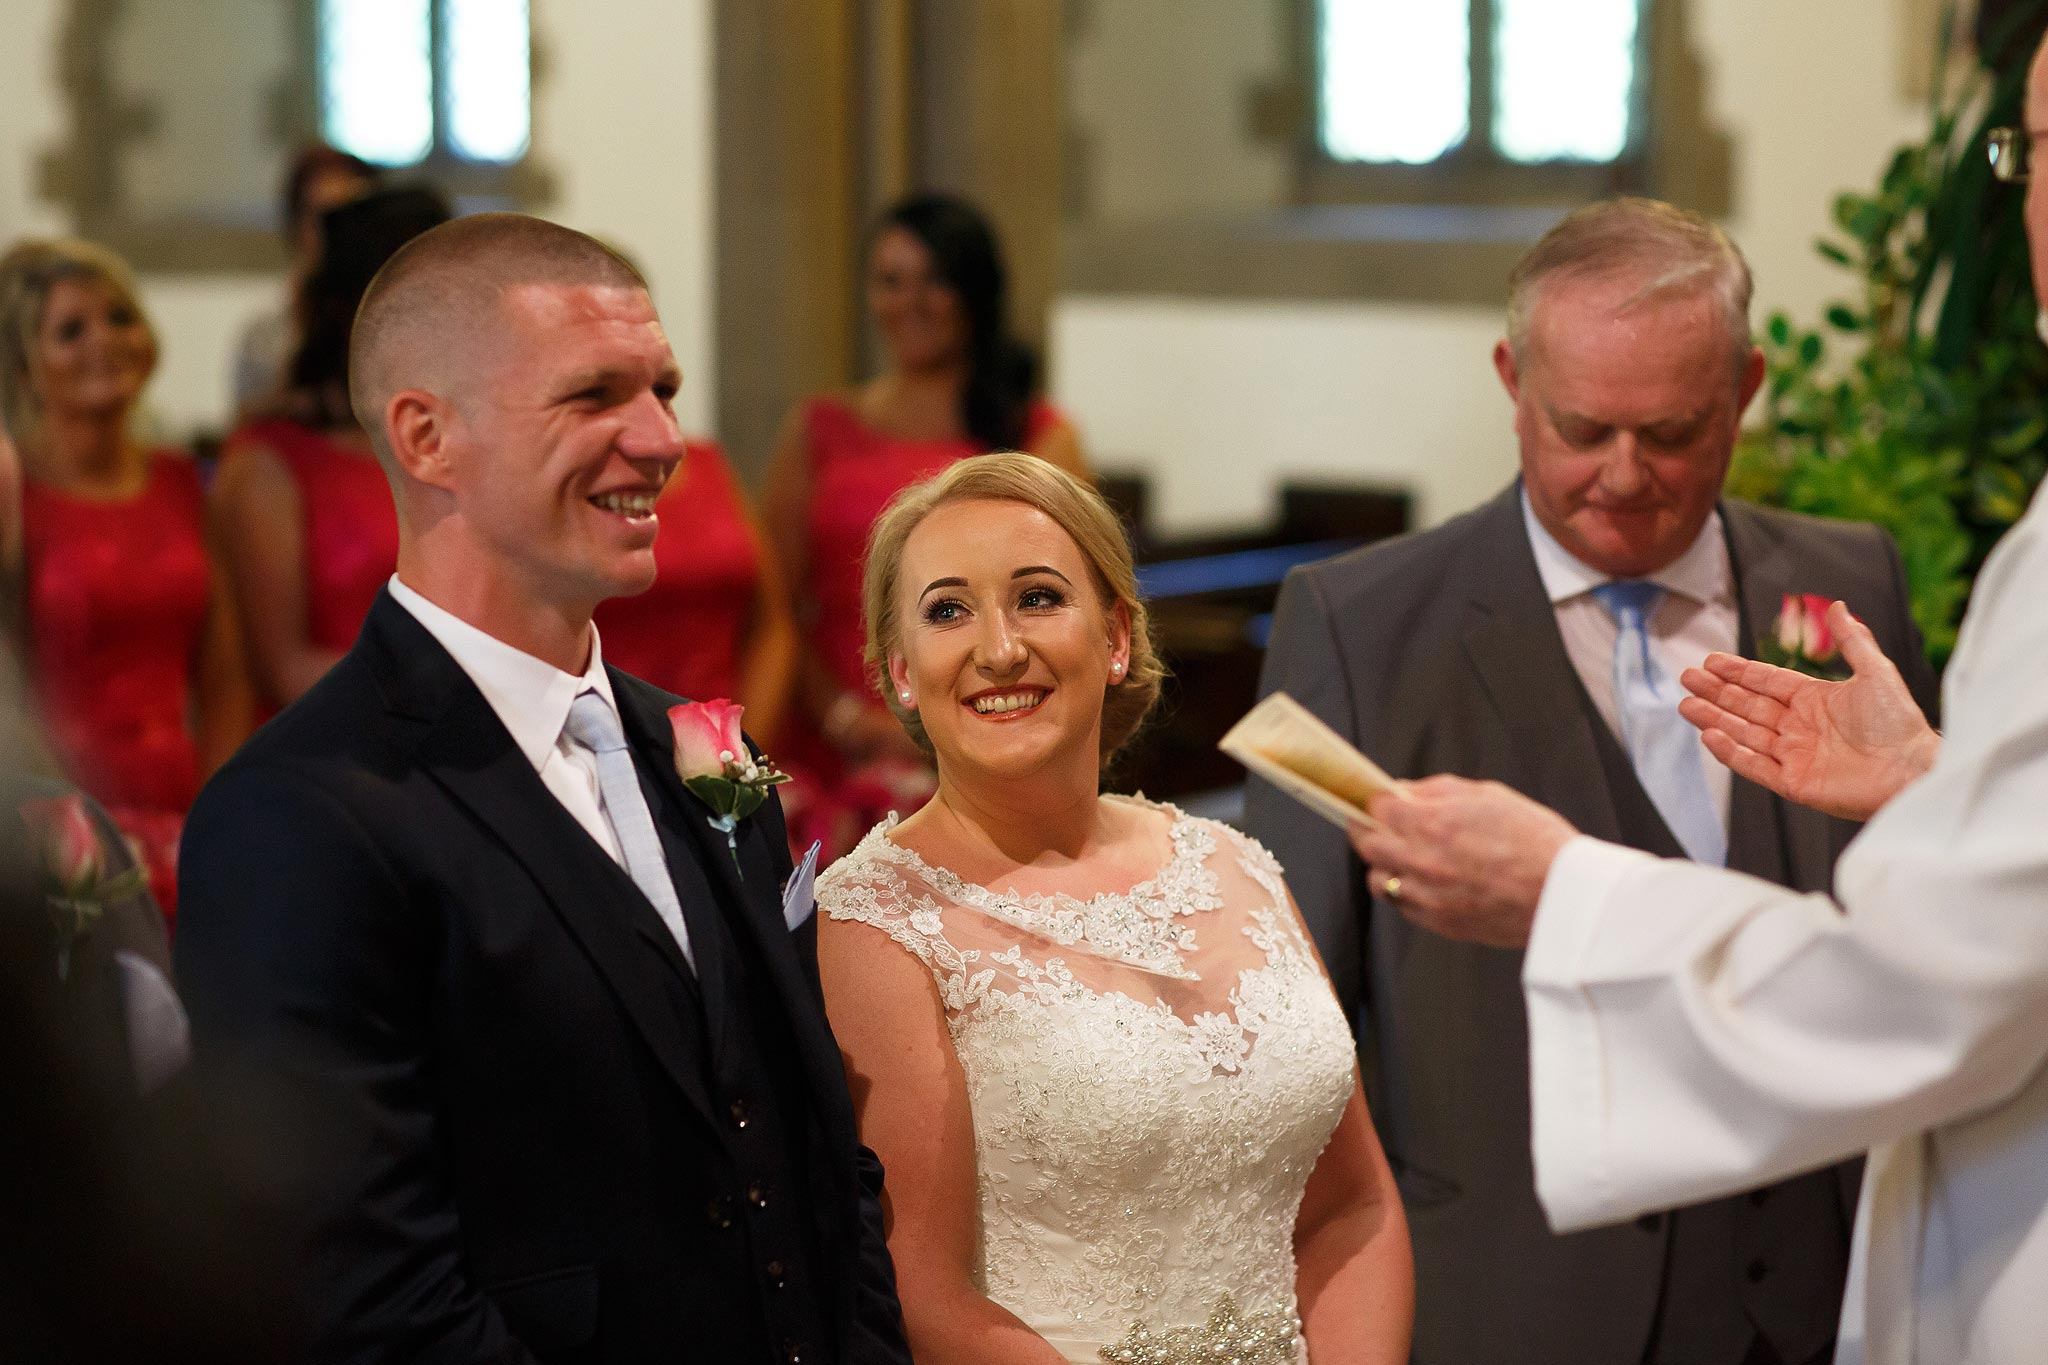 Bride and groom getting married at St Mark's Church Worsley